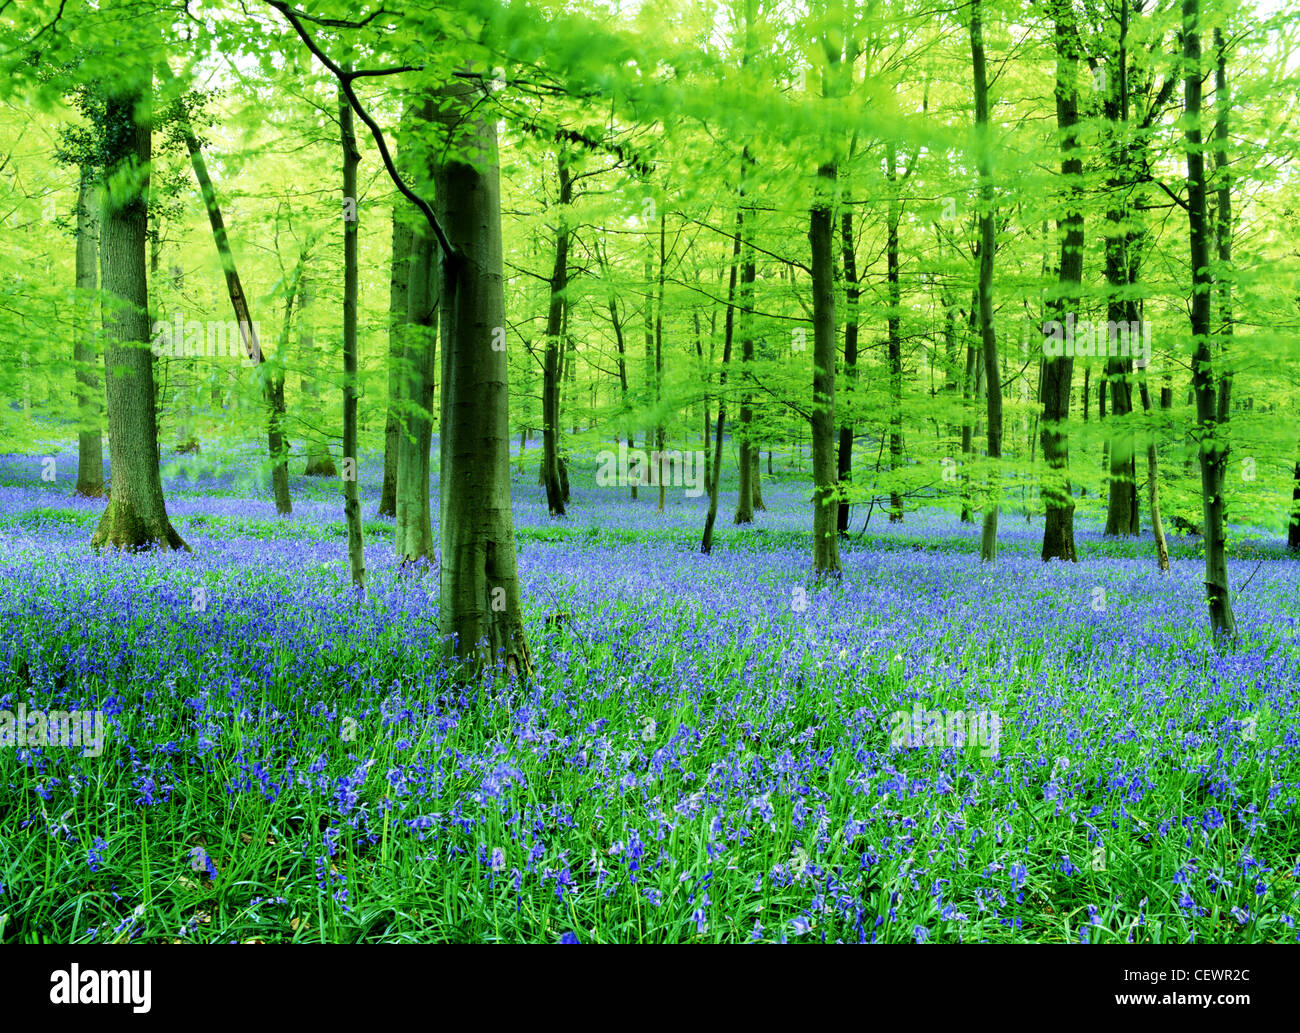 A carpet of bluebells. - Stock Image